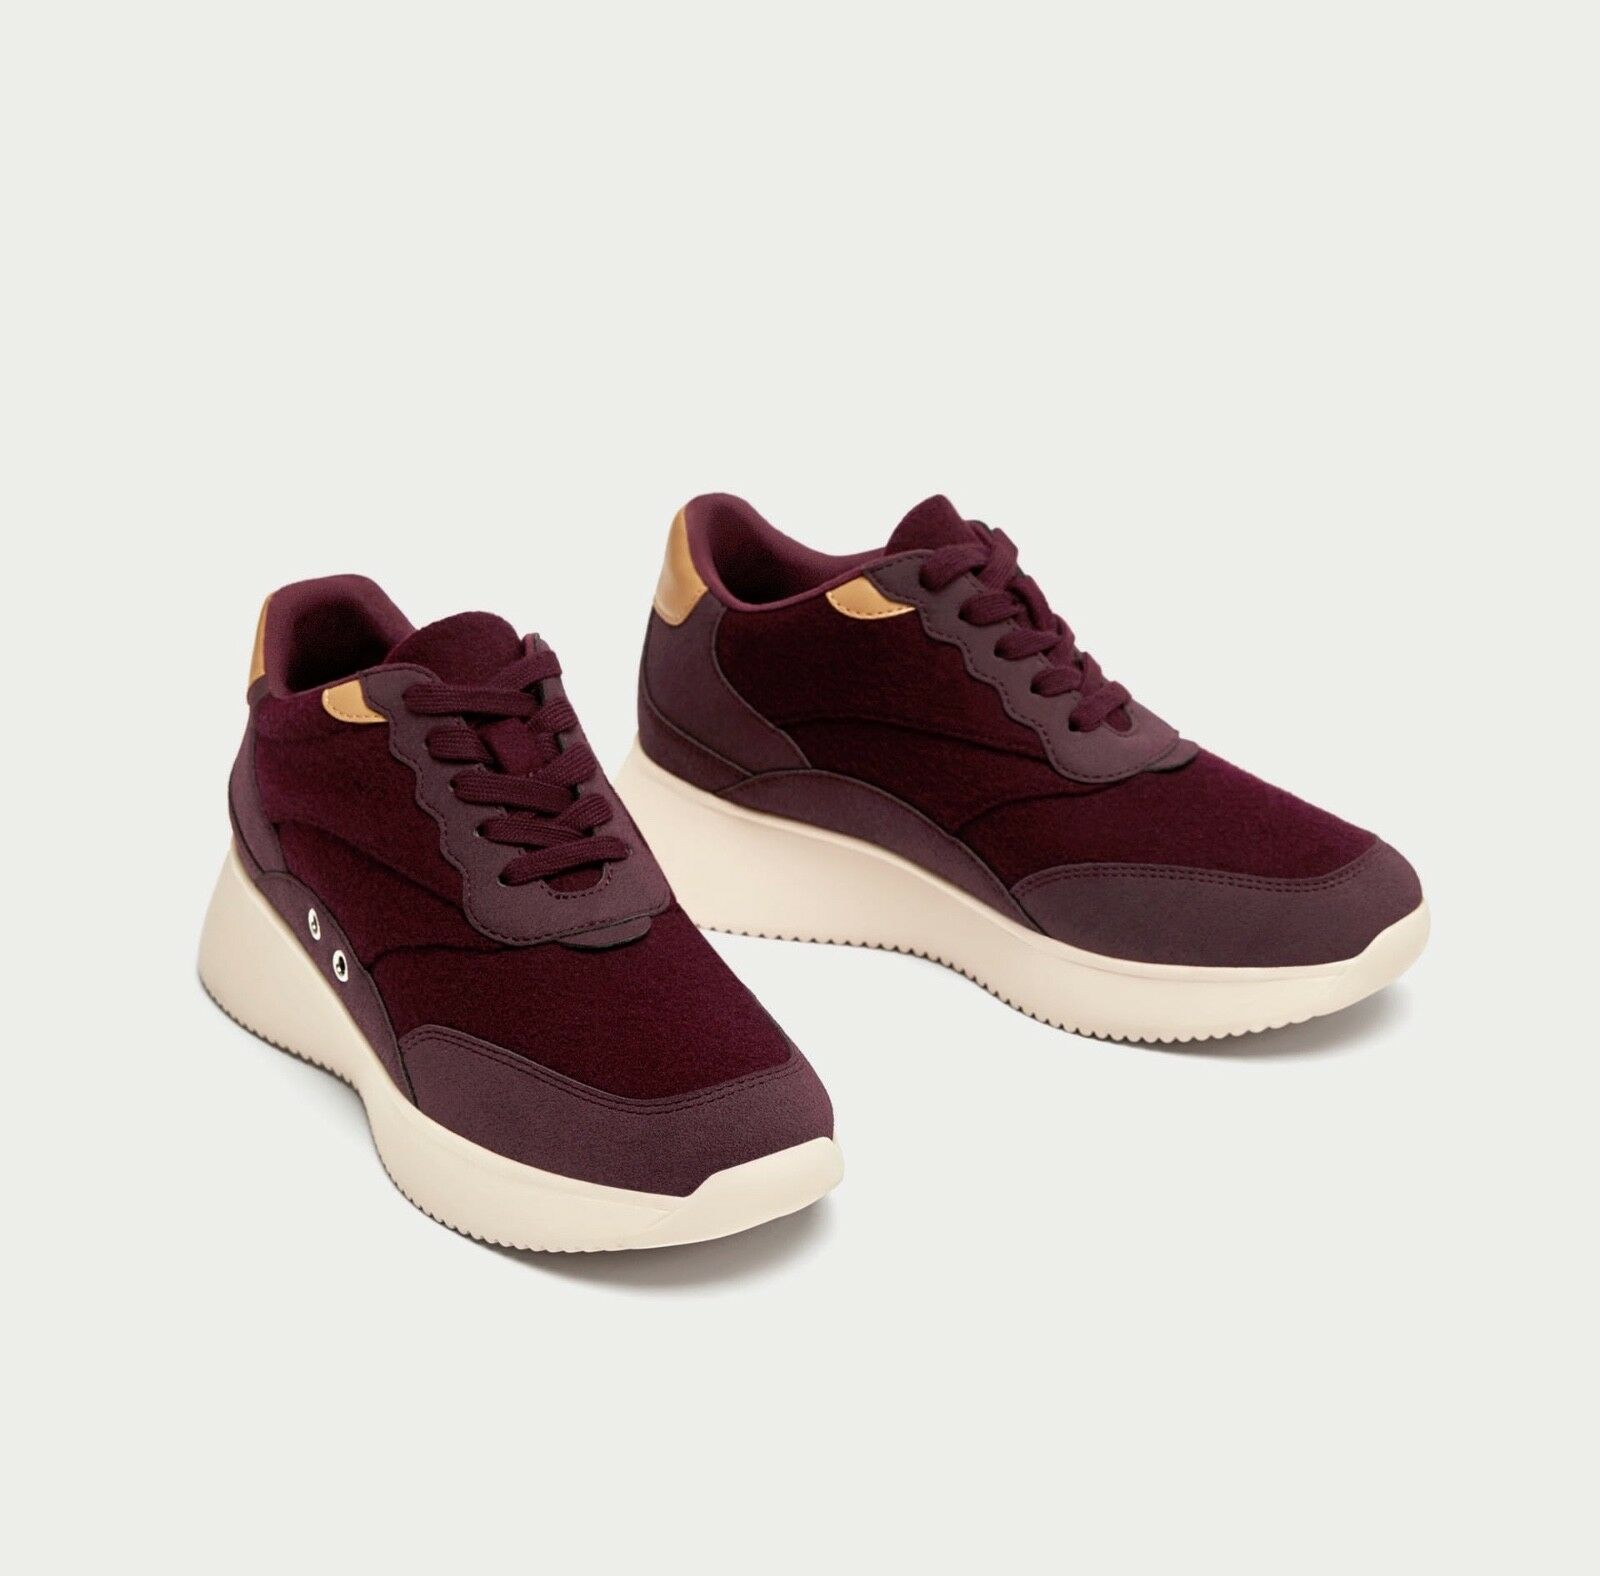 New Zara Burgundy sneakers (Größe 7)